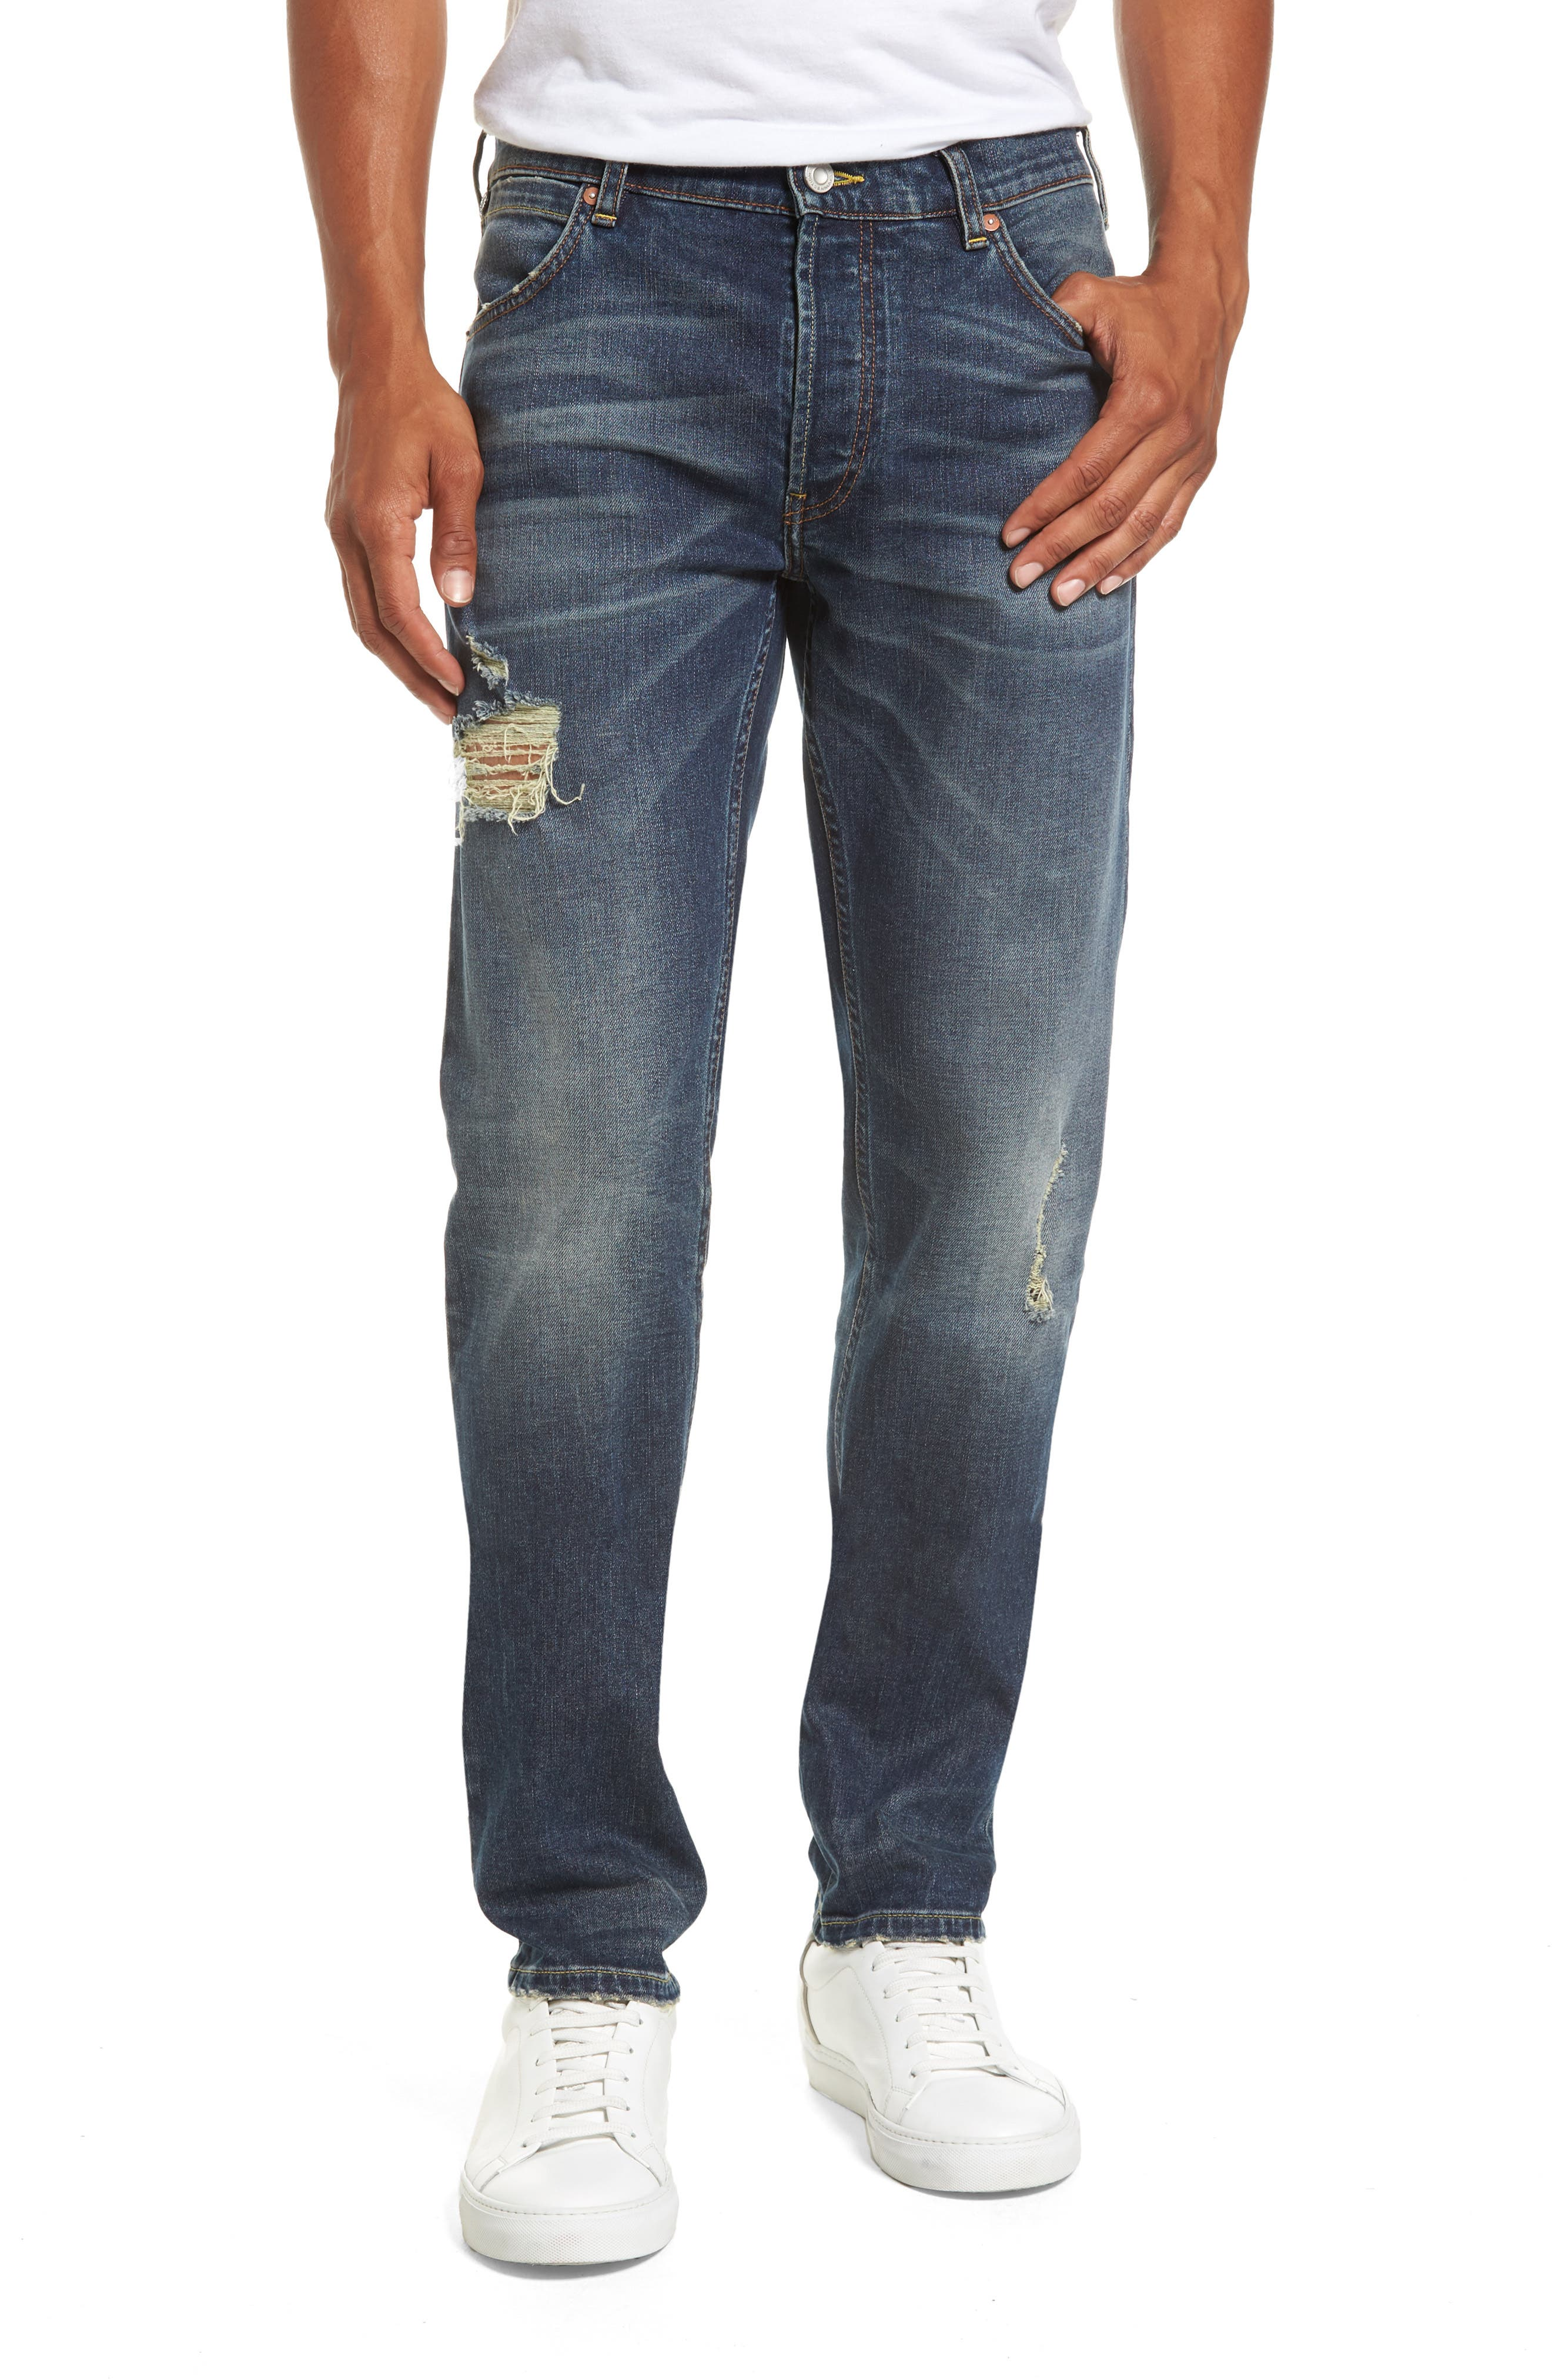 Main Image - French Connection Slim Fit Distressed Jeans (Vintage & Holes)